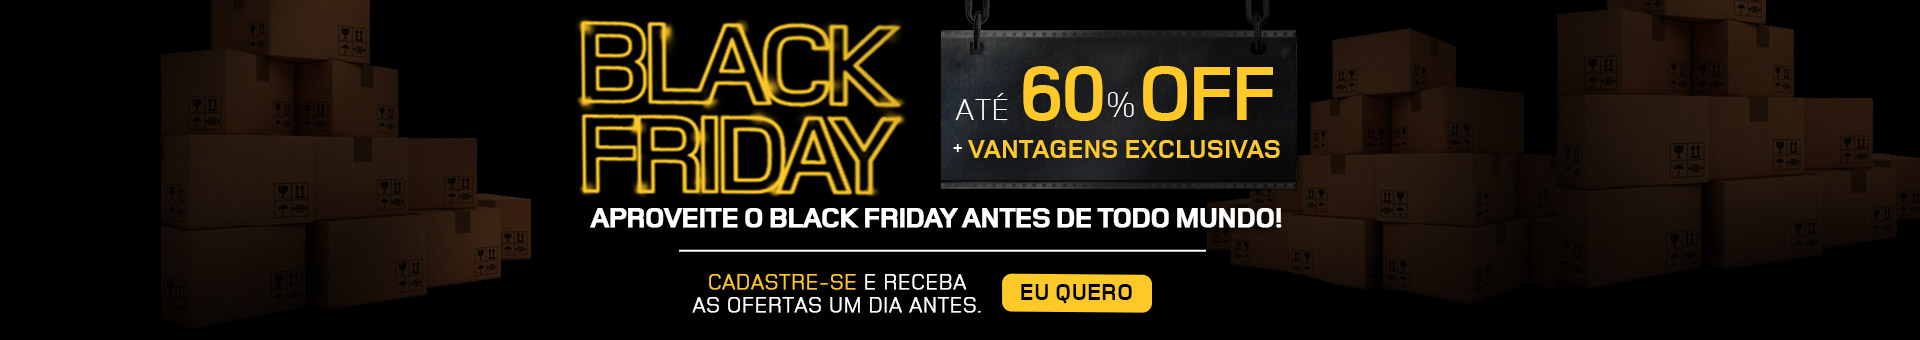 Teaser Black Friday